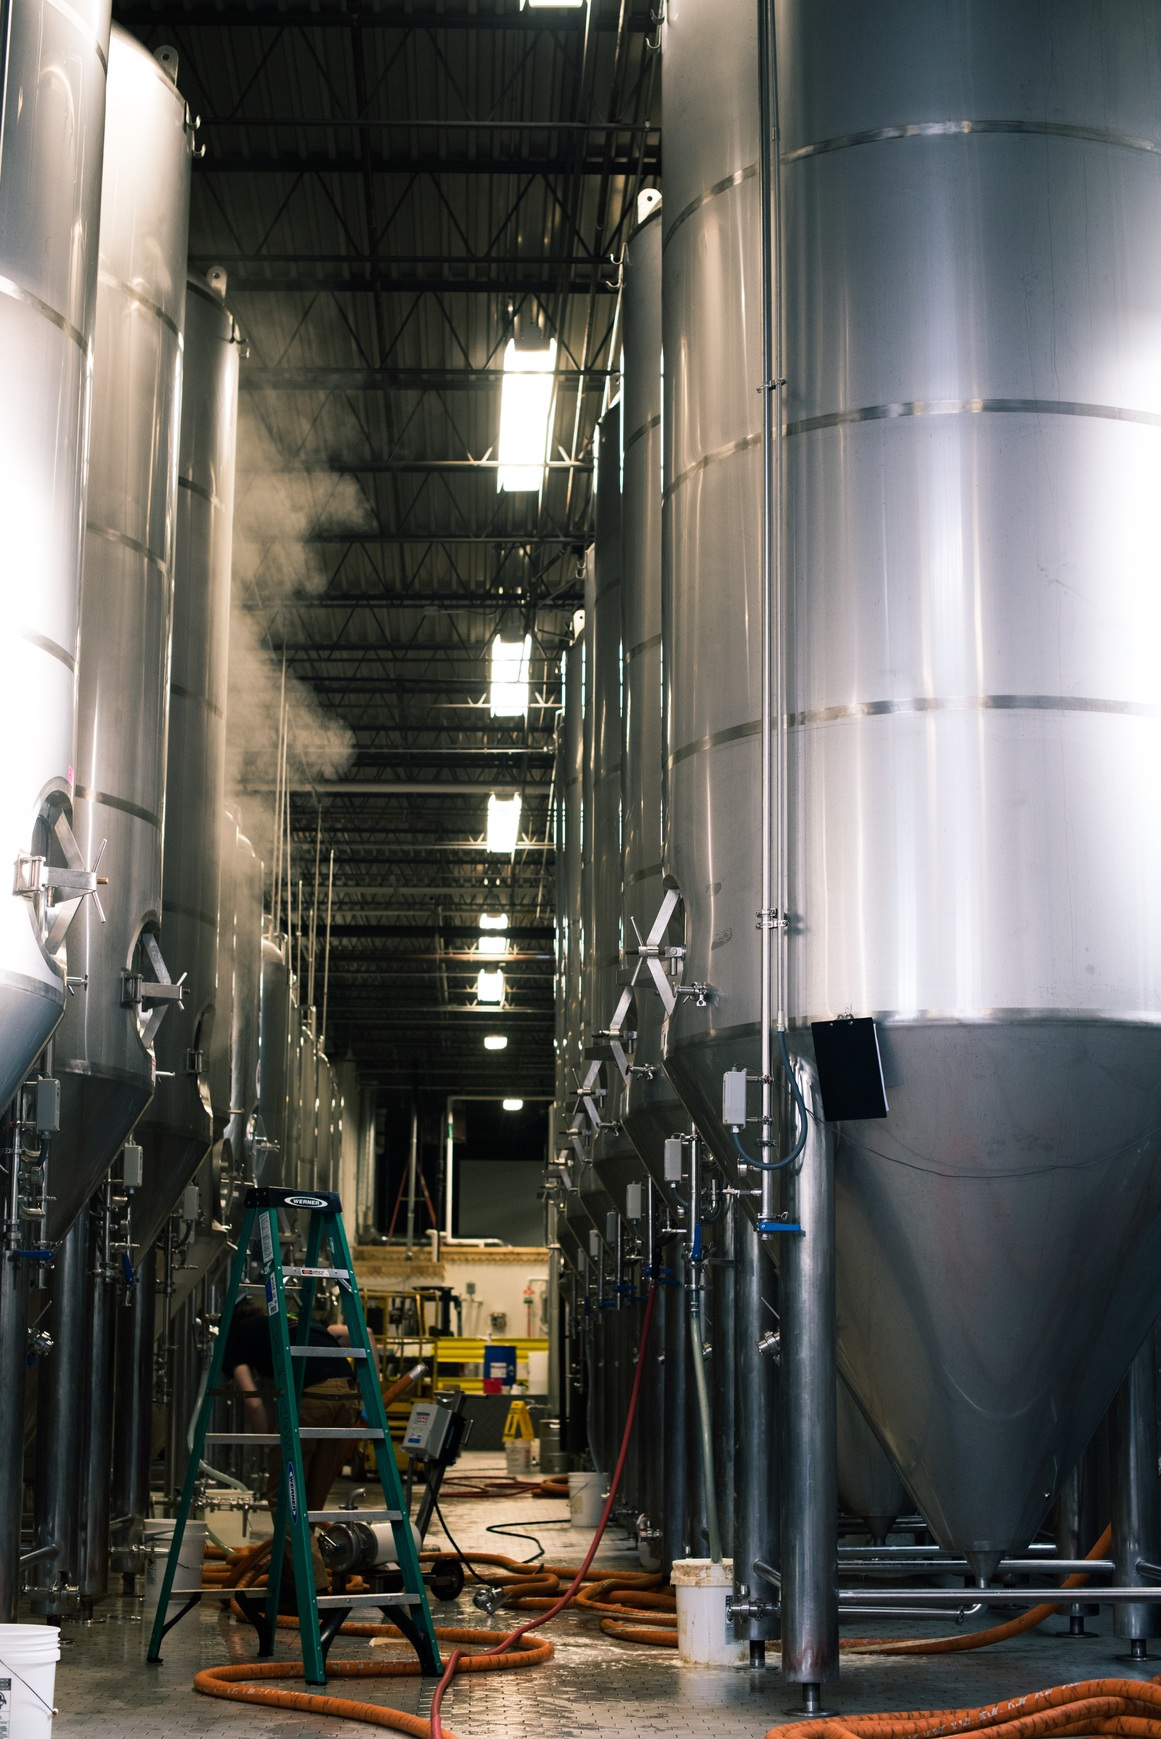 The tanks inside Half Acre's new facility. Photo by Eric Dirksen.